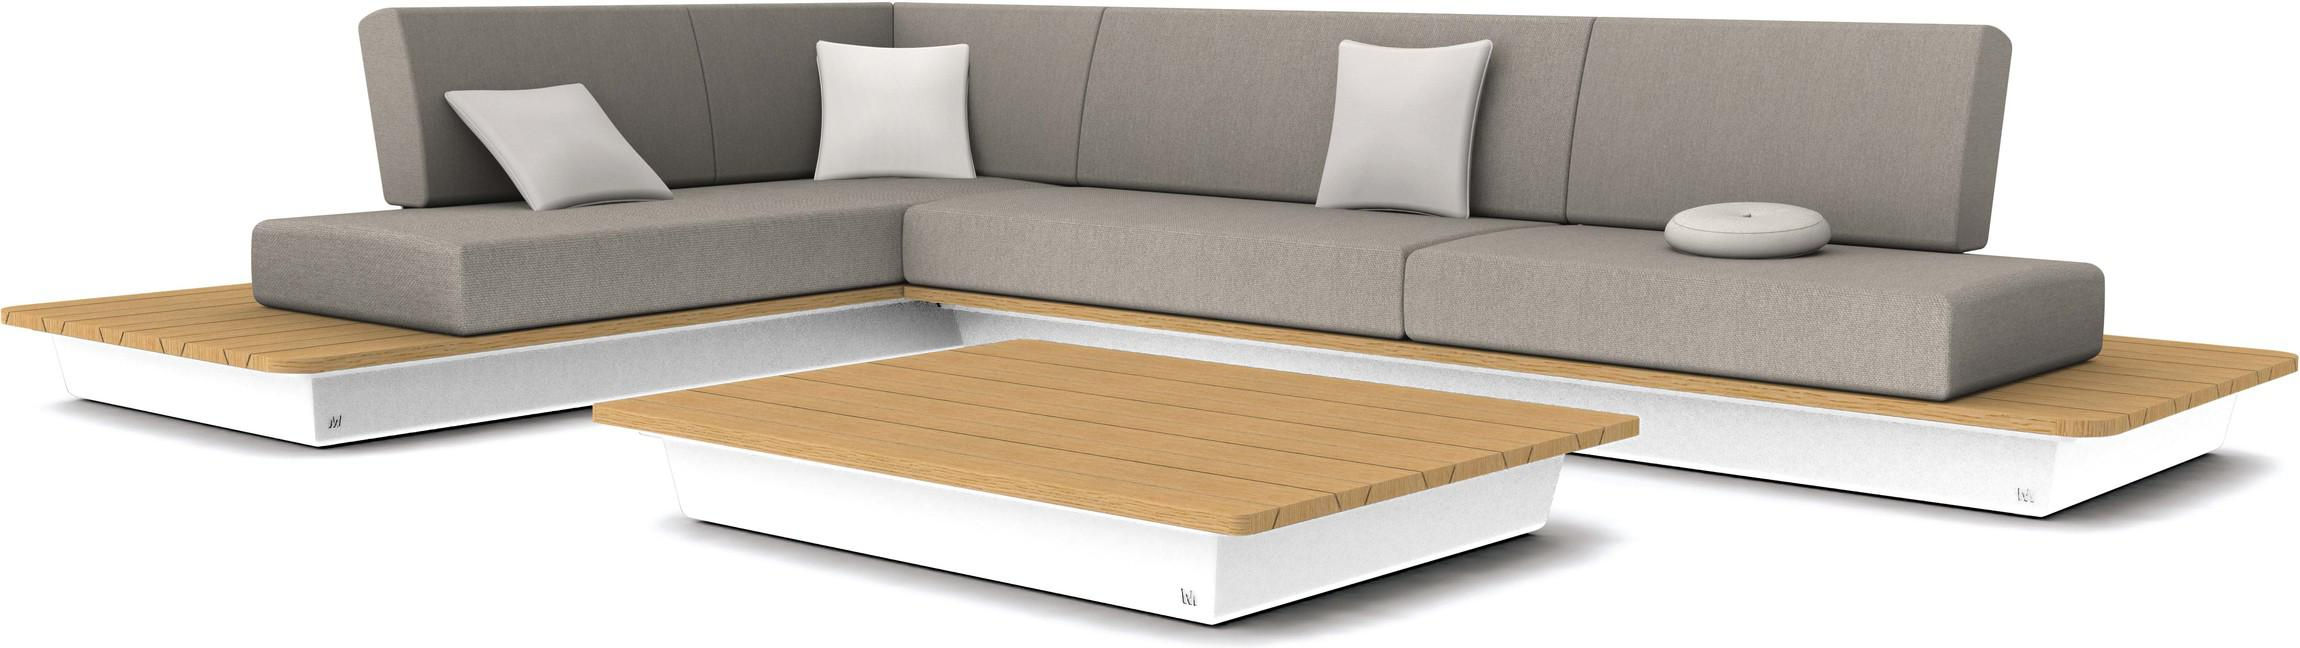 Air concepto 1 - blanco - tablero de madera iroko